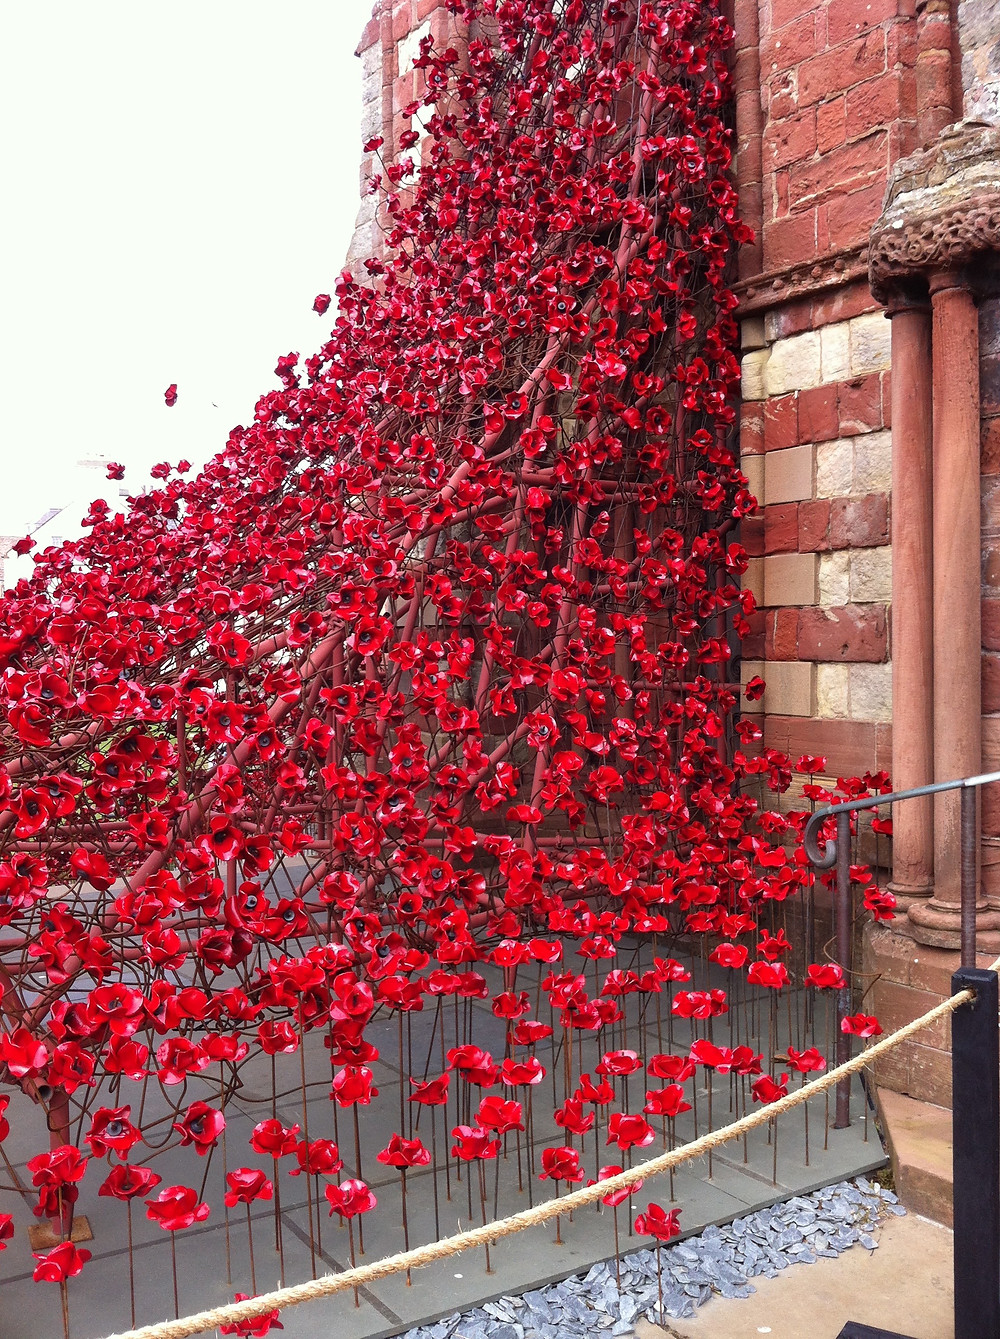 Art installation of Poppies close-up